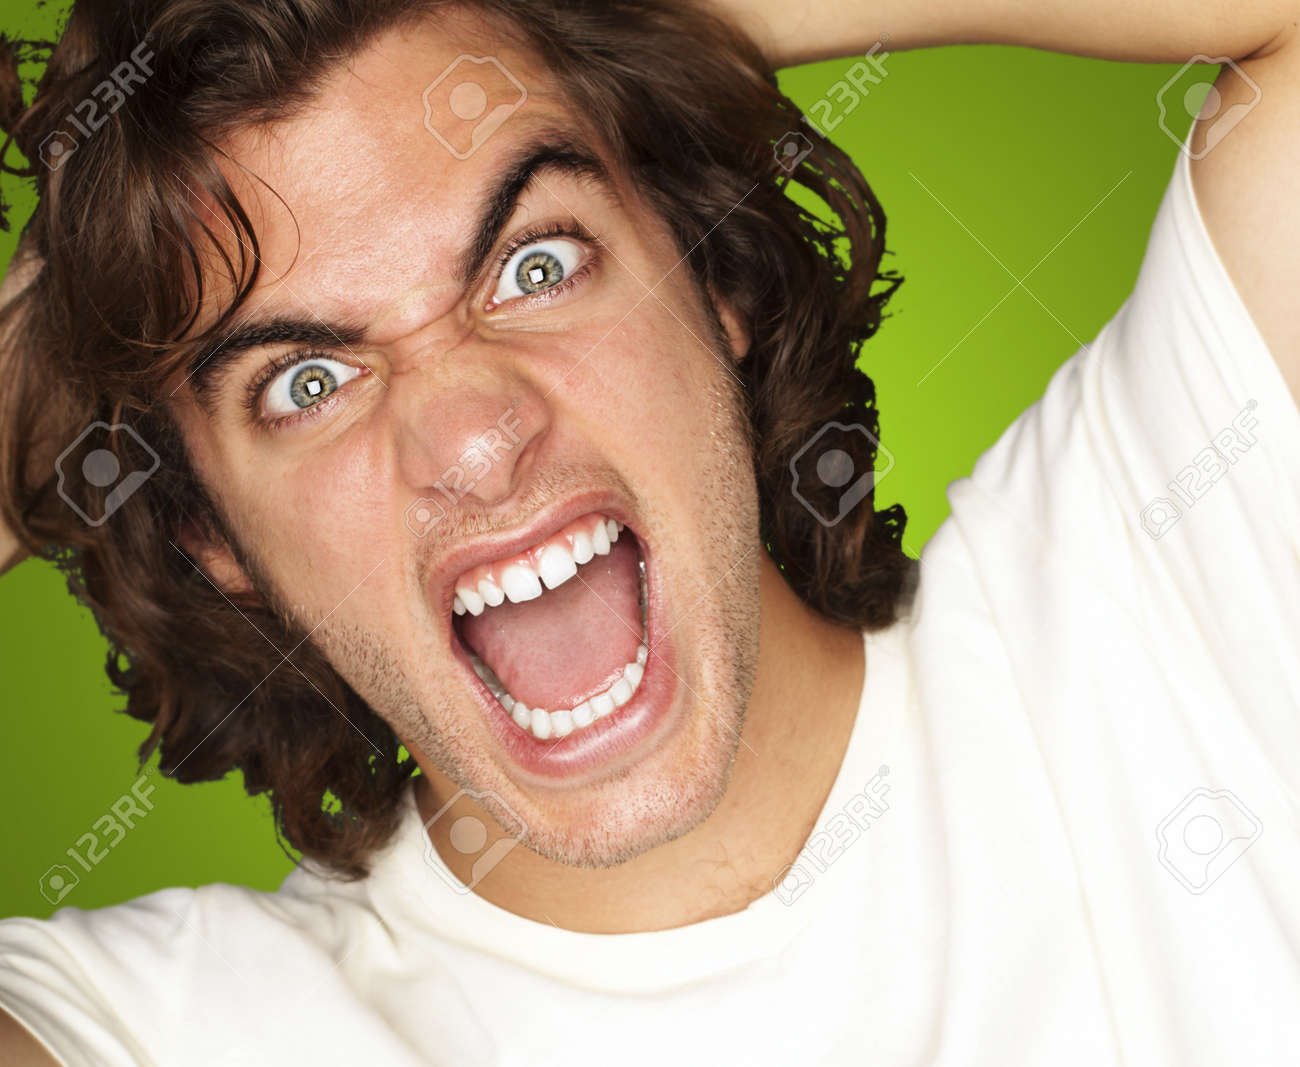 young angry man shouting against a green background Stock Photo - 13155971